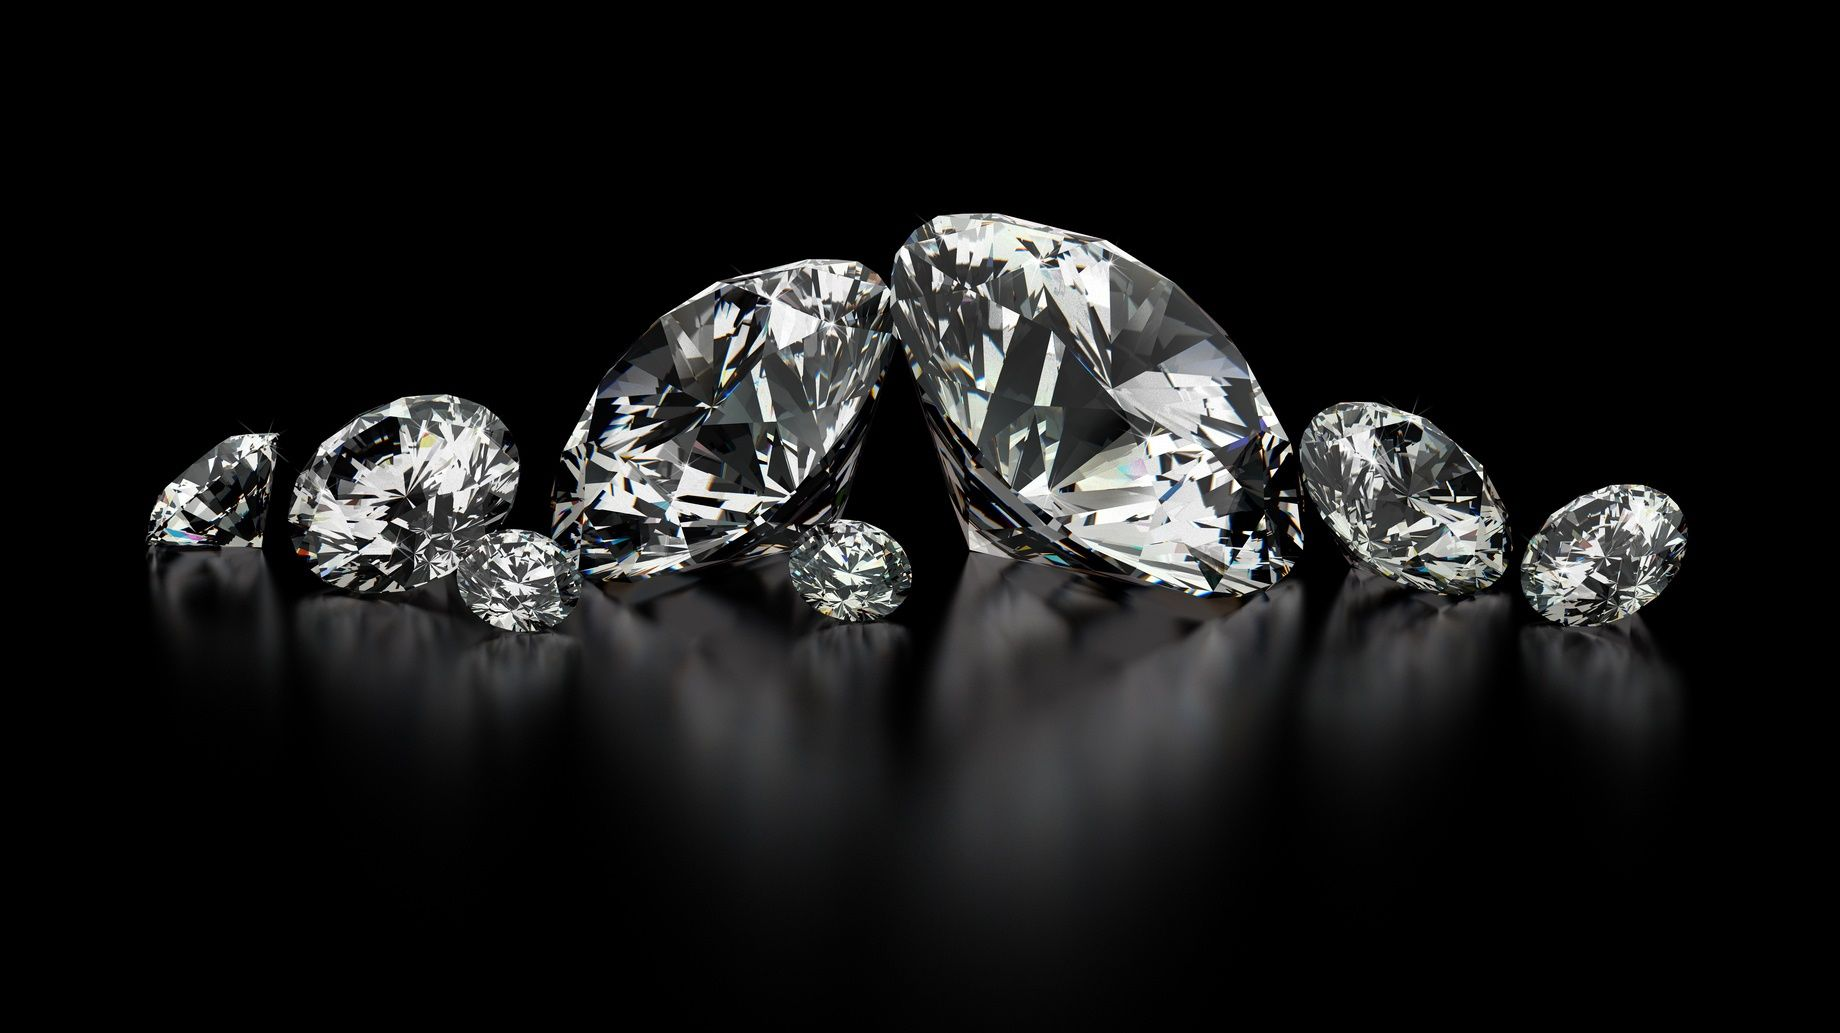 Some of the best online diamond retailers will have an immense selection of  loose diamonds for